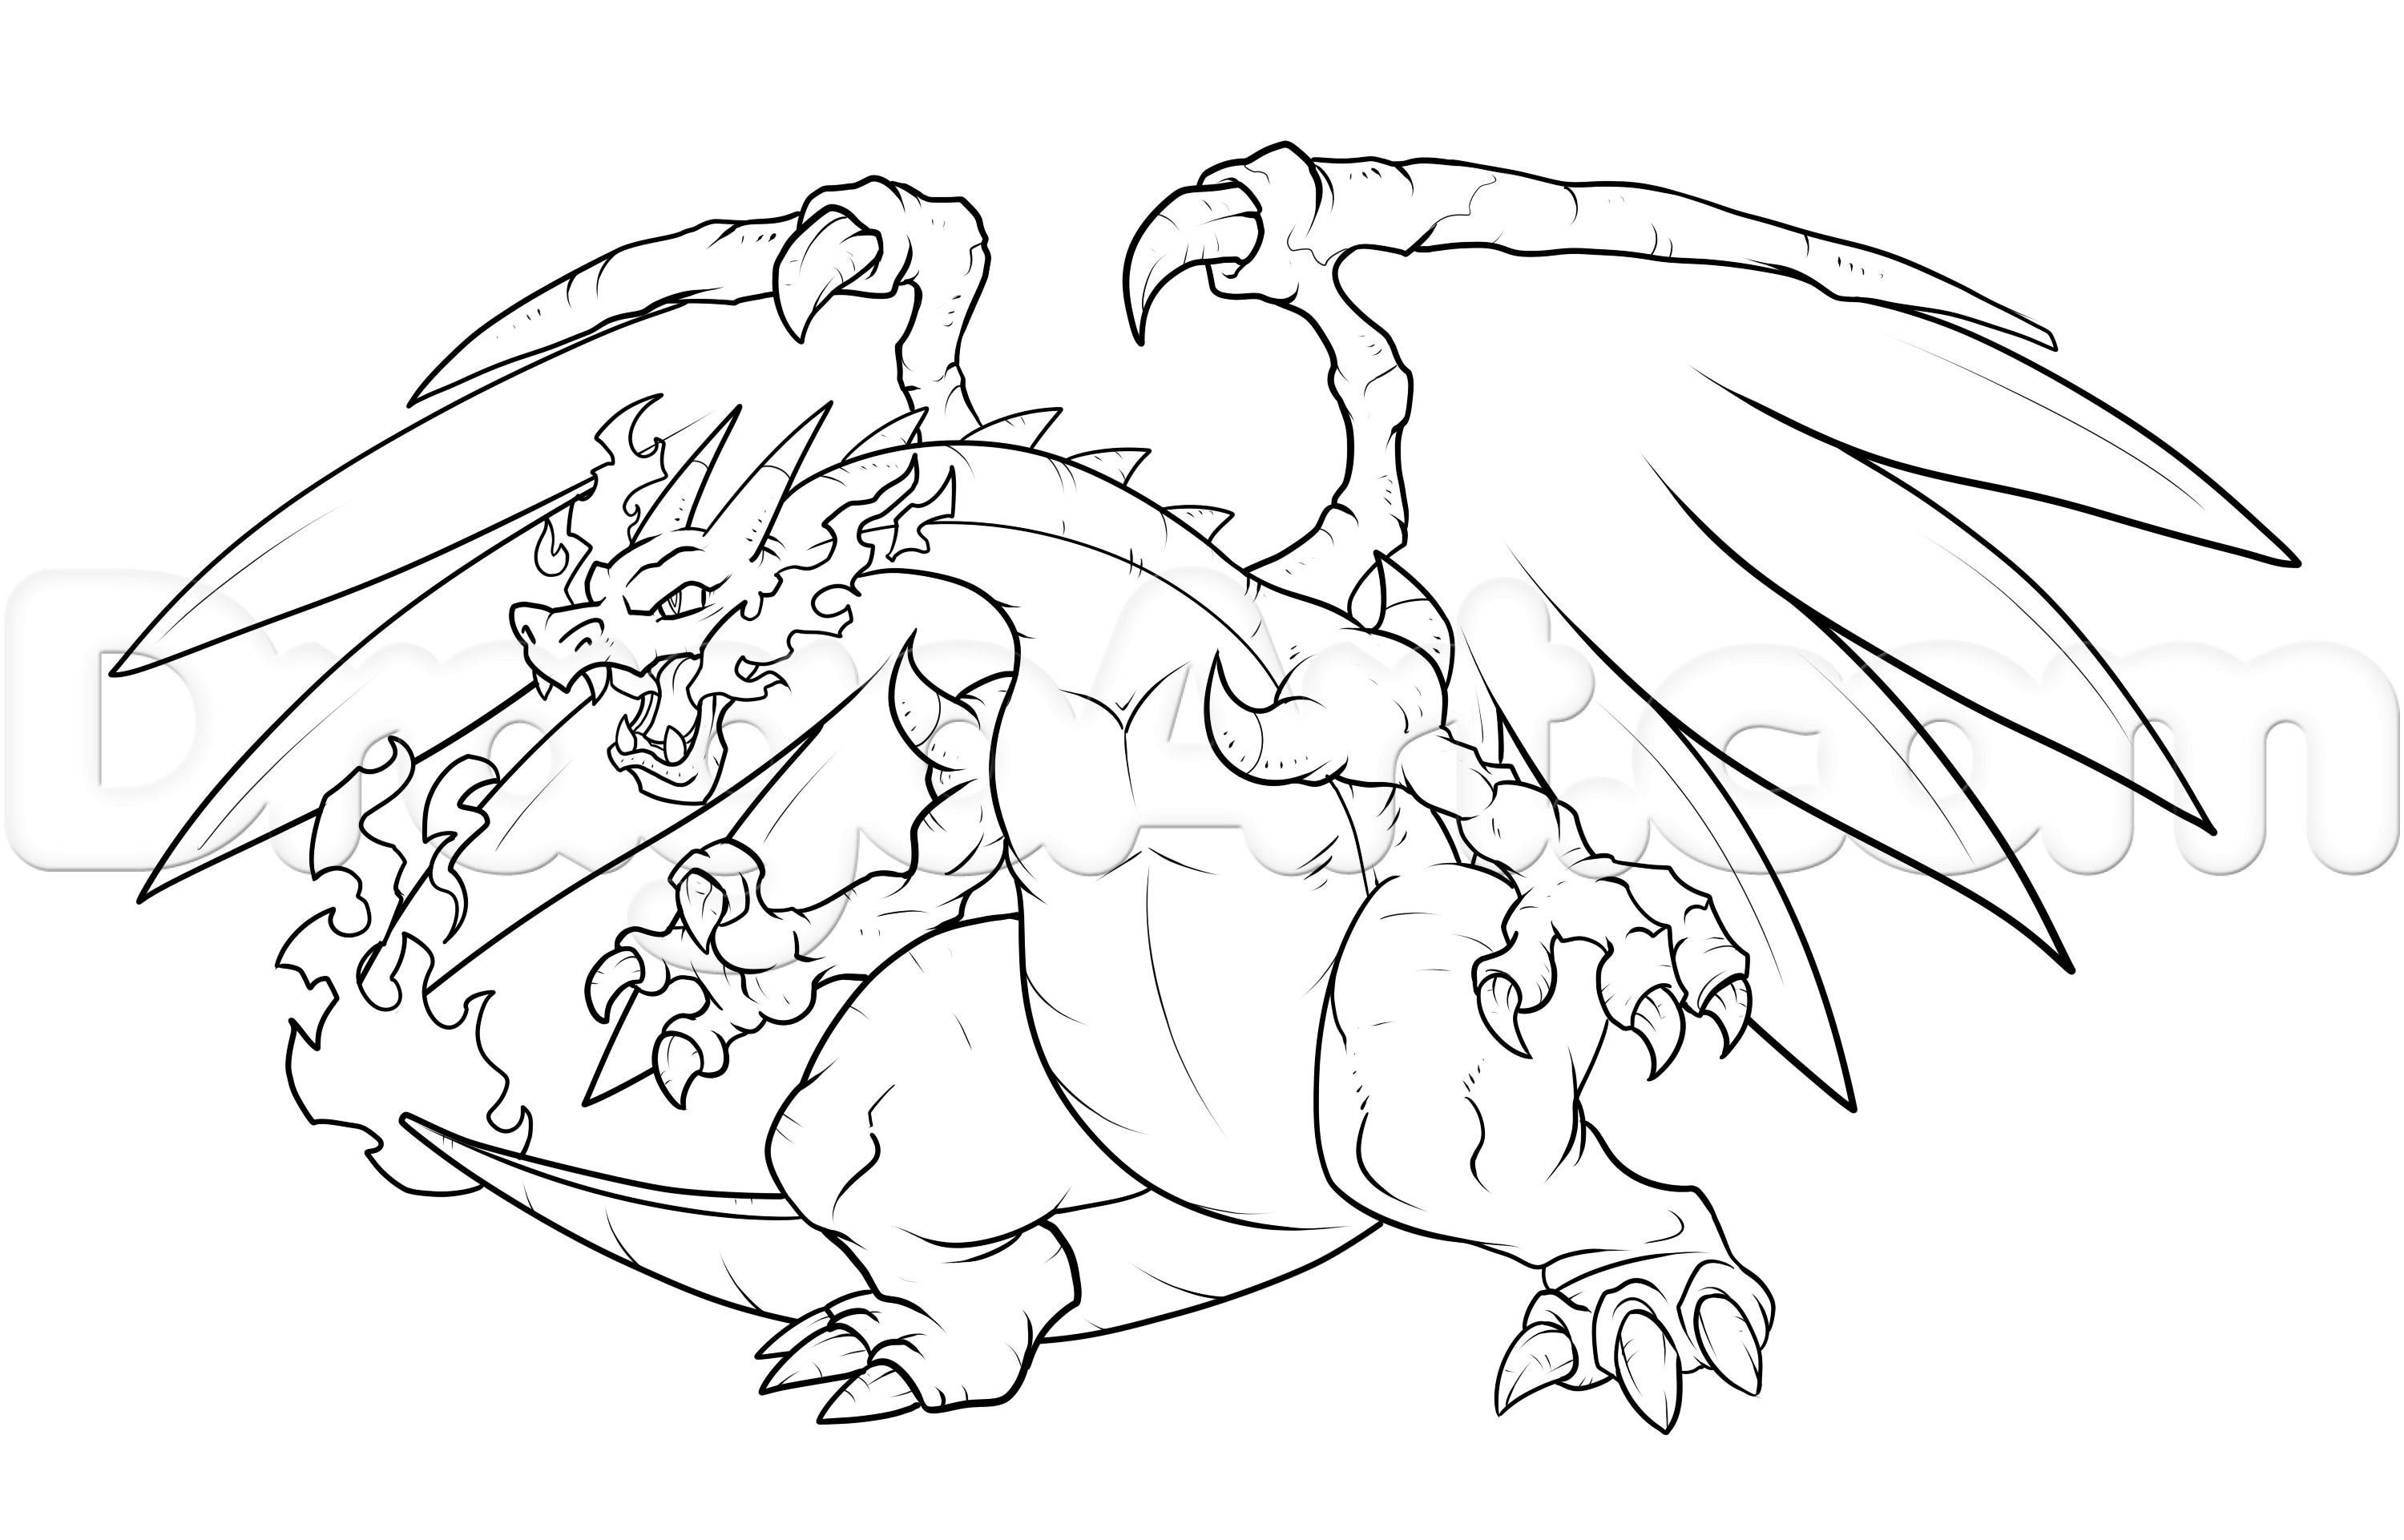 Pokemon Coloring Pages Mega Charizard From The Thousands Of Pictures On Line About Pokemon Colori Pokemon Coloring Pages Moon Coloring Pages Pokemon Coloring